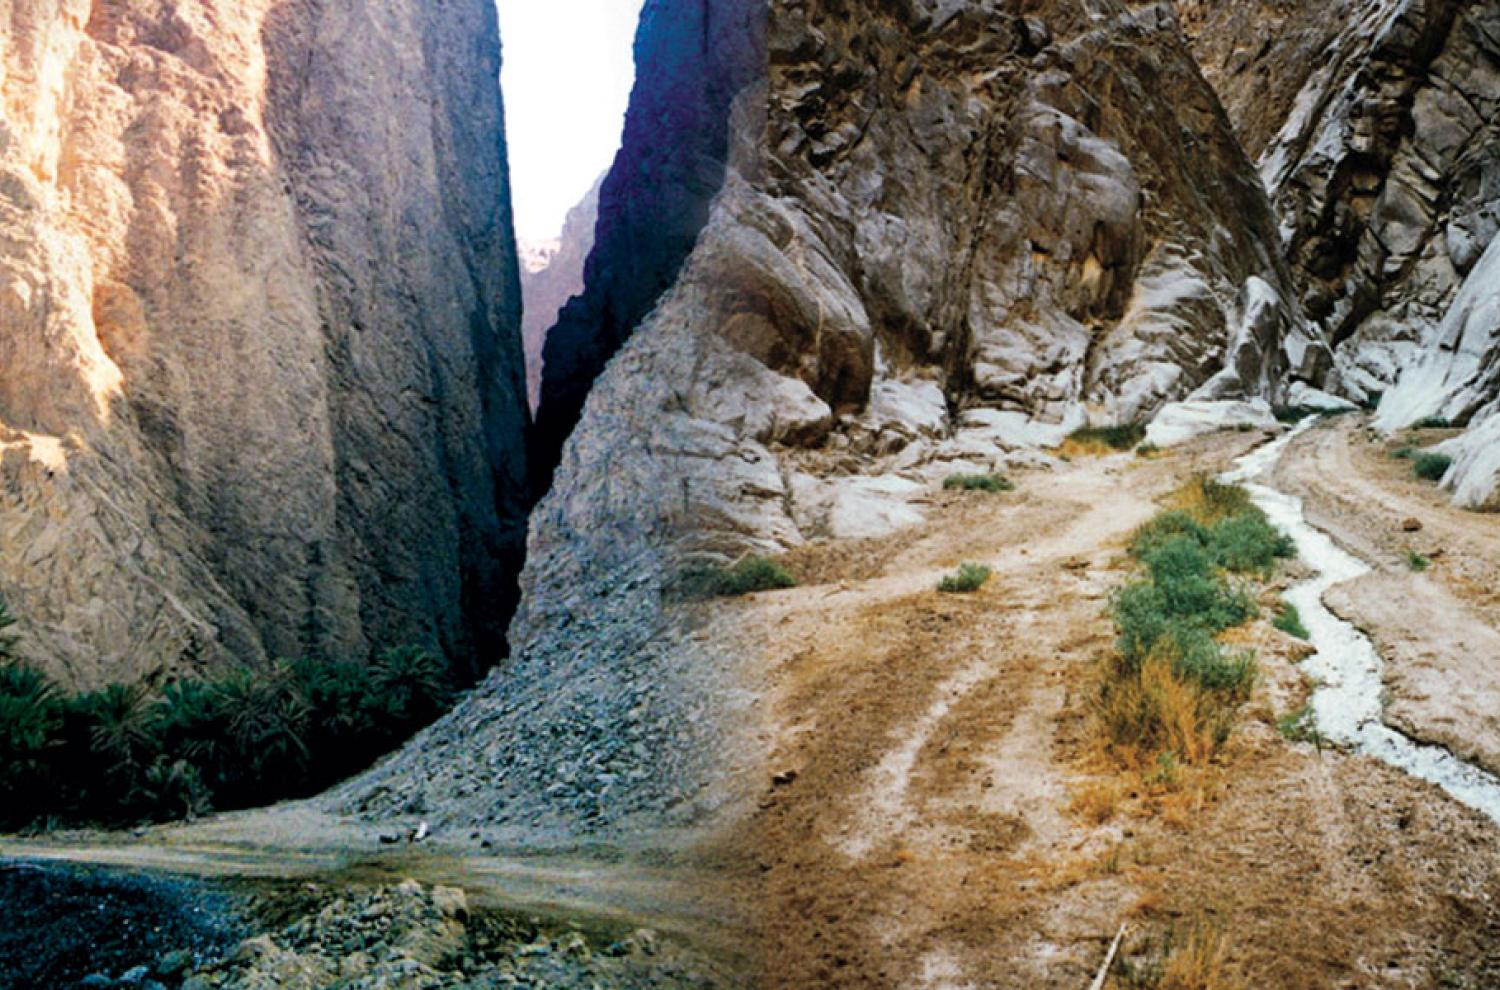 Two images of Wadi Tayyib al-Ism via lds.org